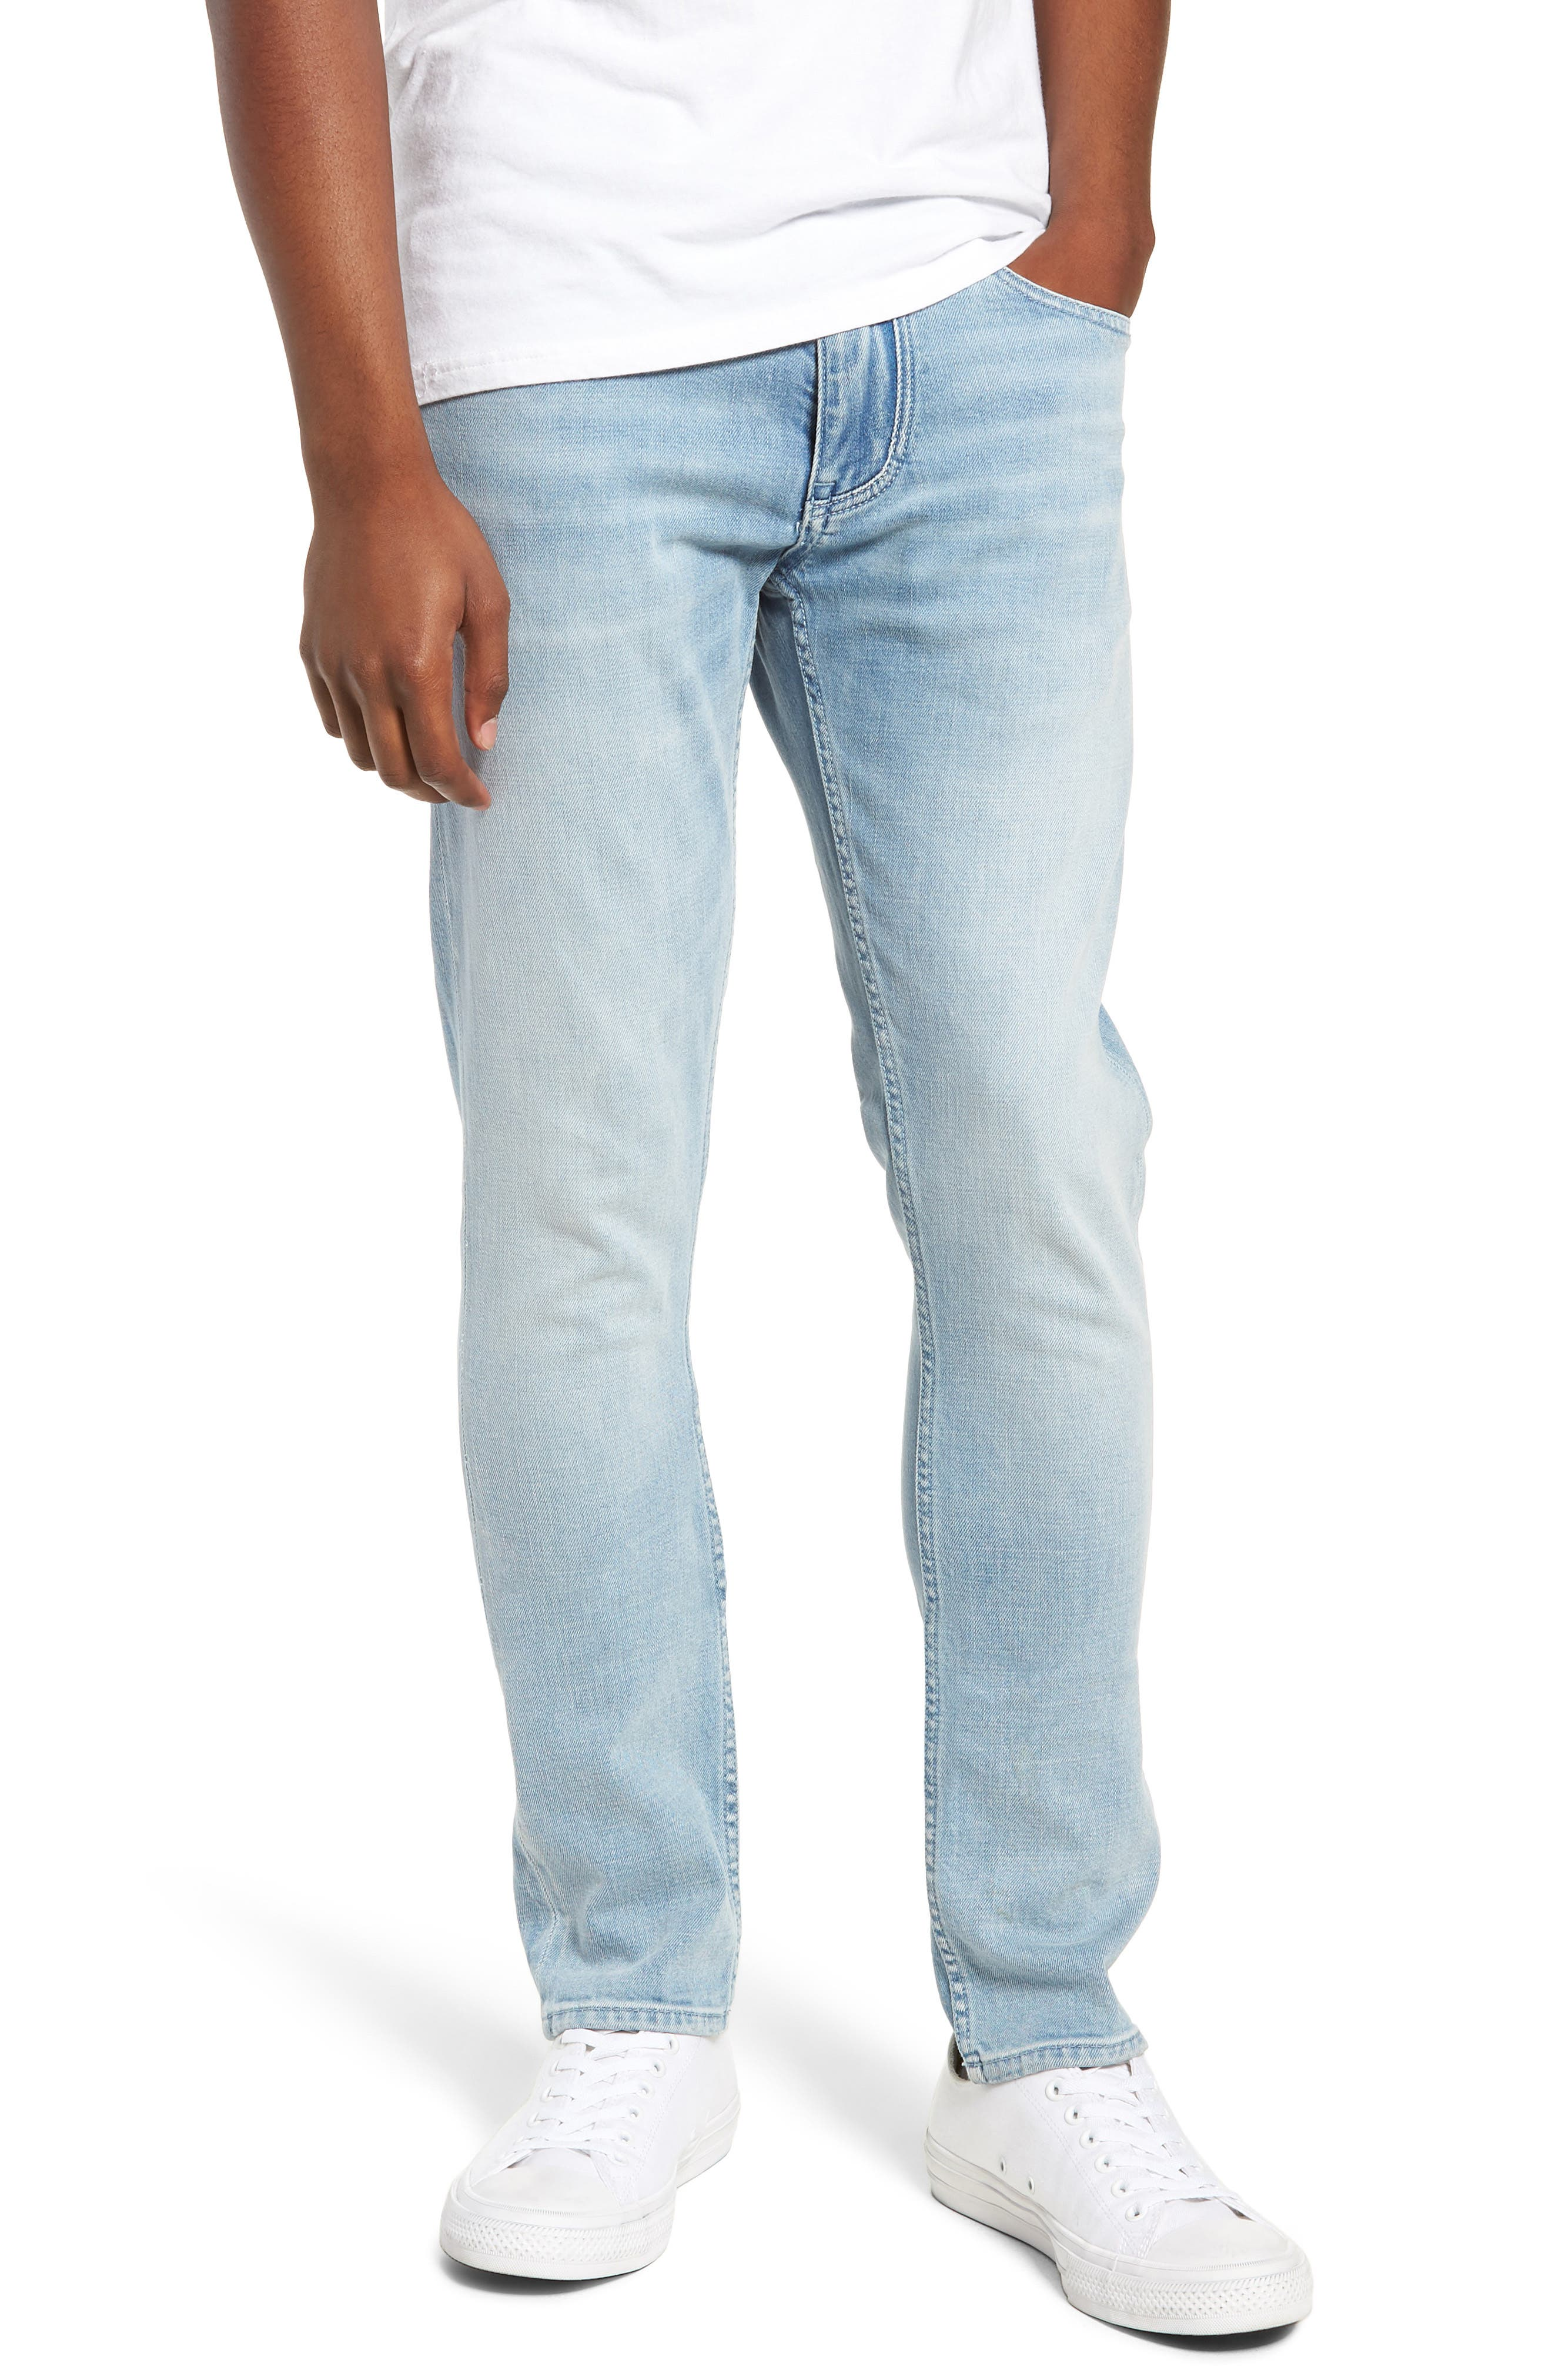 Horatio Skinny Fit Jeans,                             Main thumbnail 1, color,                             450